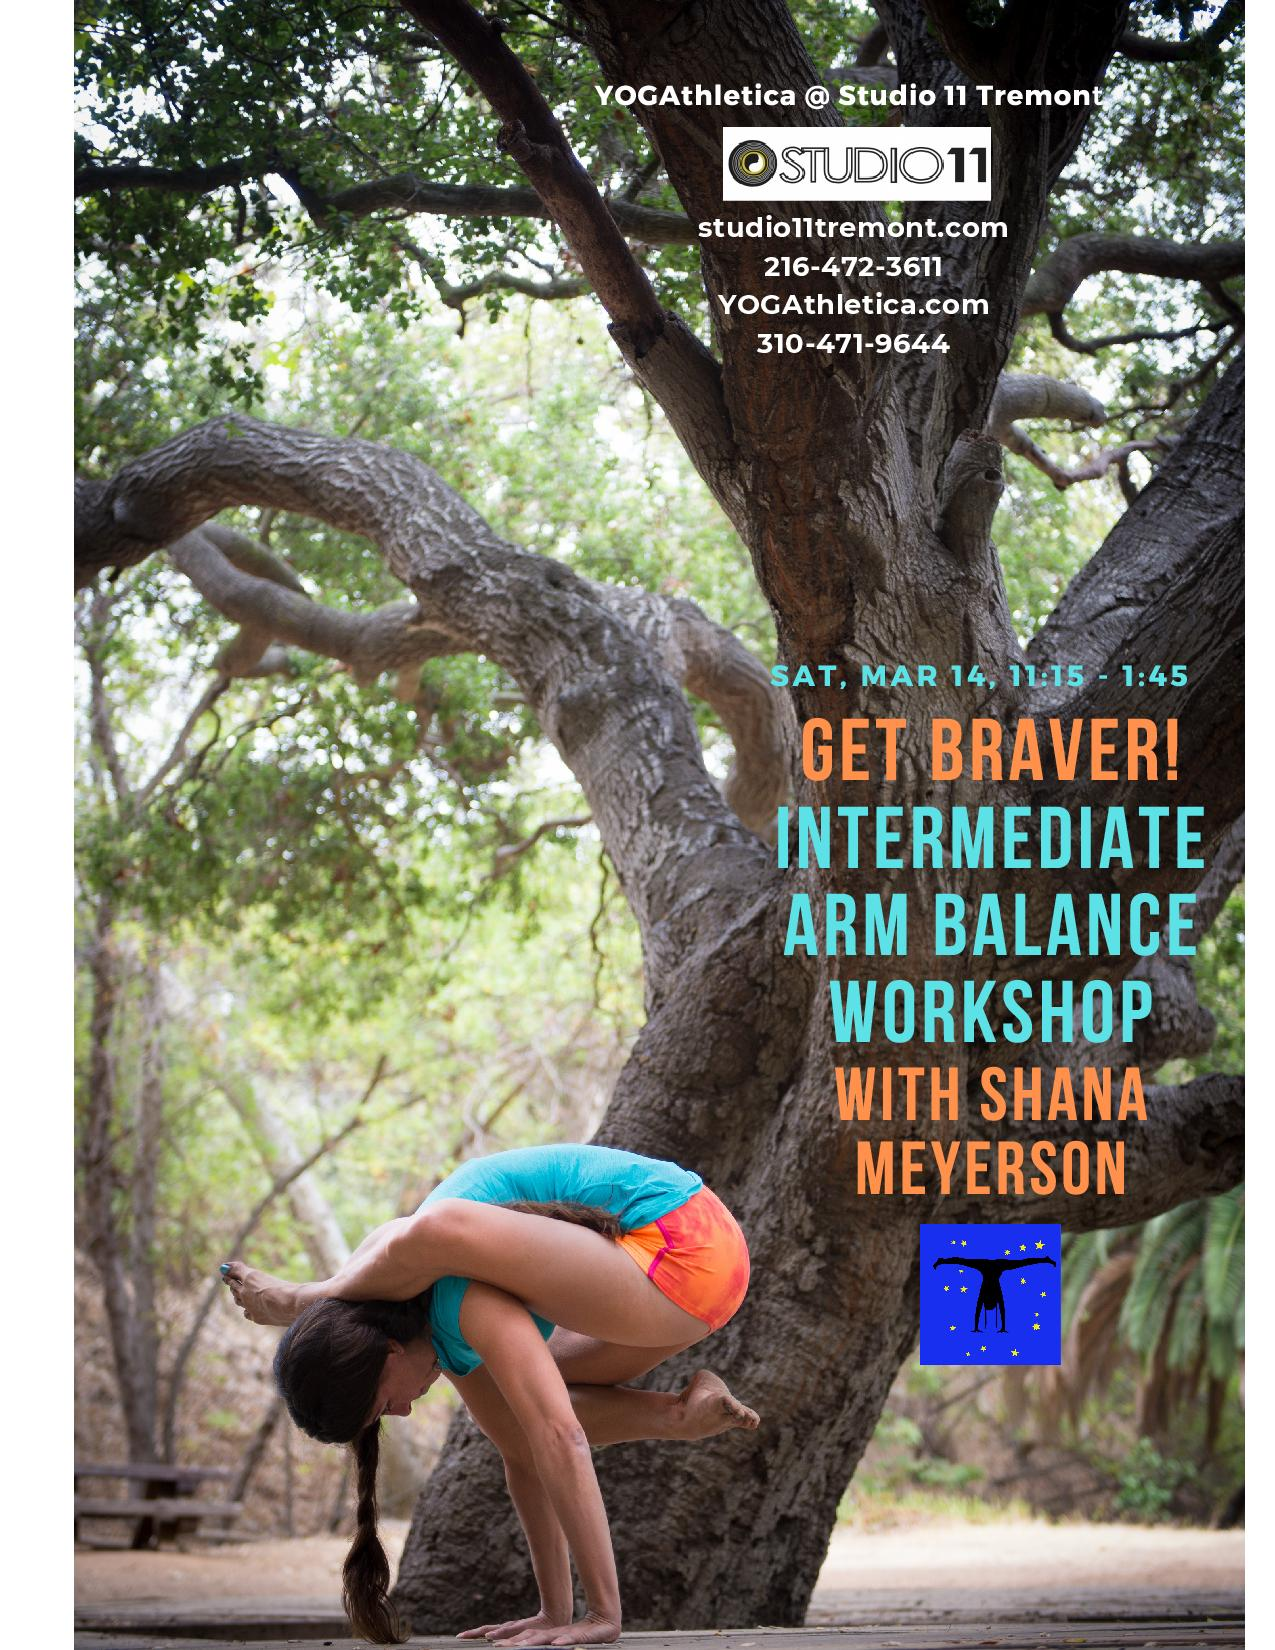 yogathletica intermediate arm balance workshop with shana meyerson at studio 11 tremont